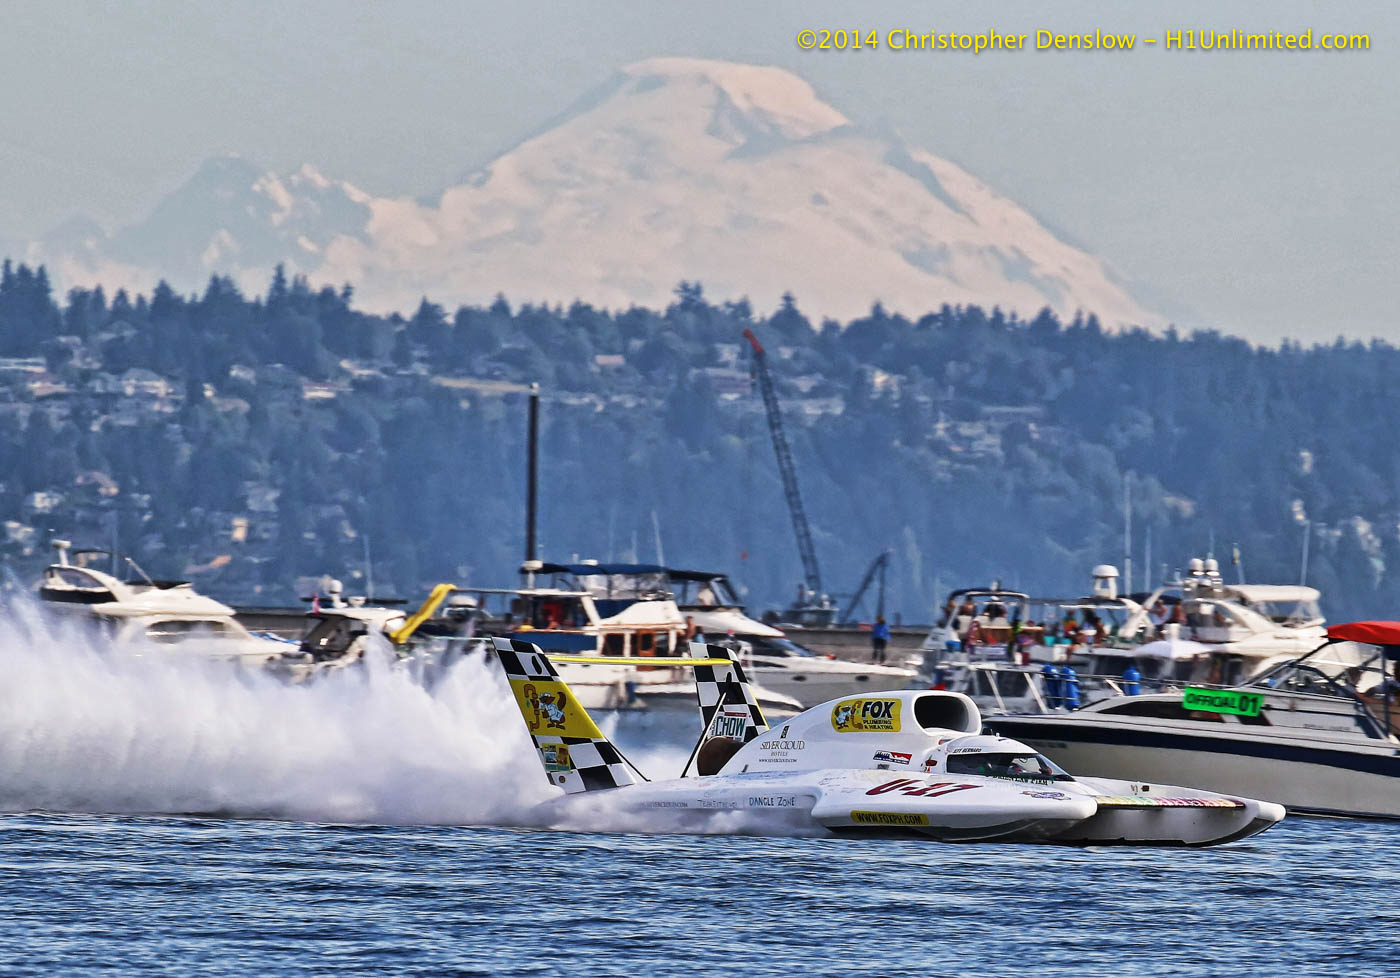 Seafair Cup: Friday Images